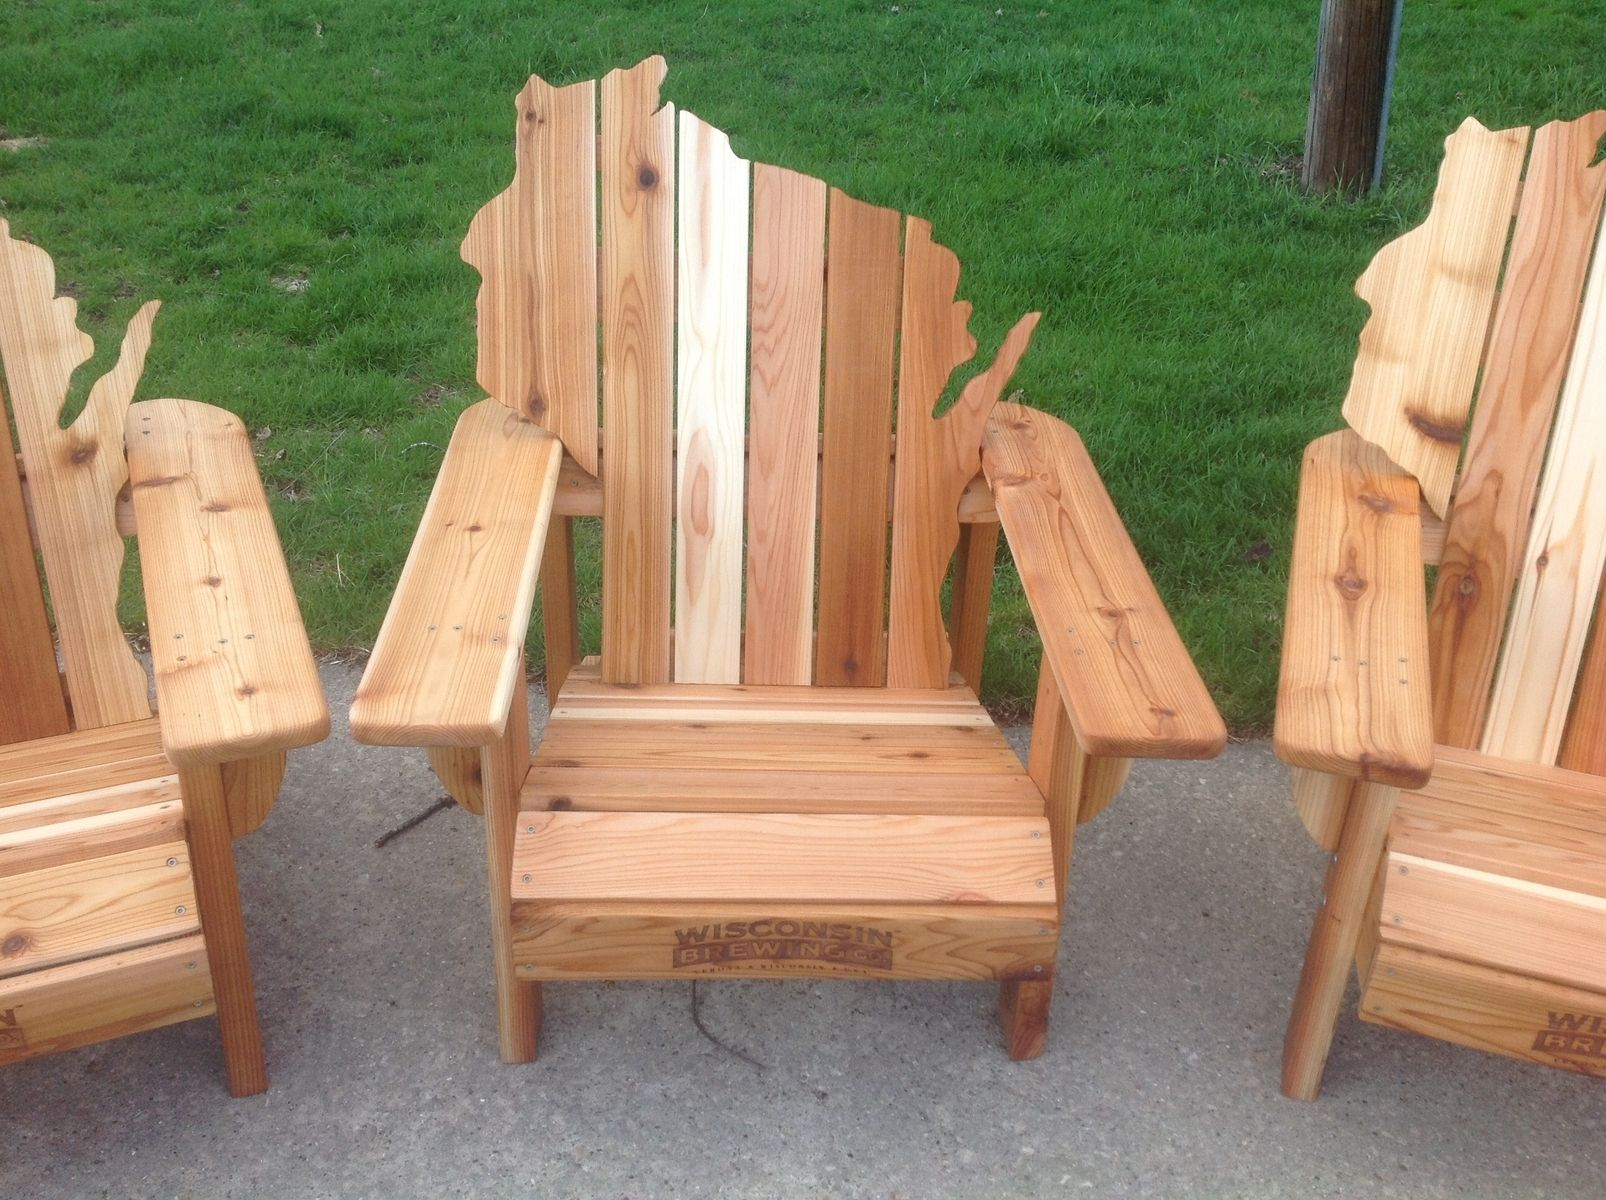 Custom Made Cedar Adirondack Wisconsin Chairs With Personalized Laser Engraving